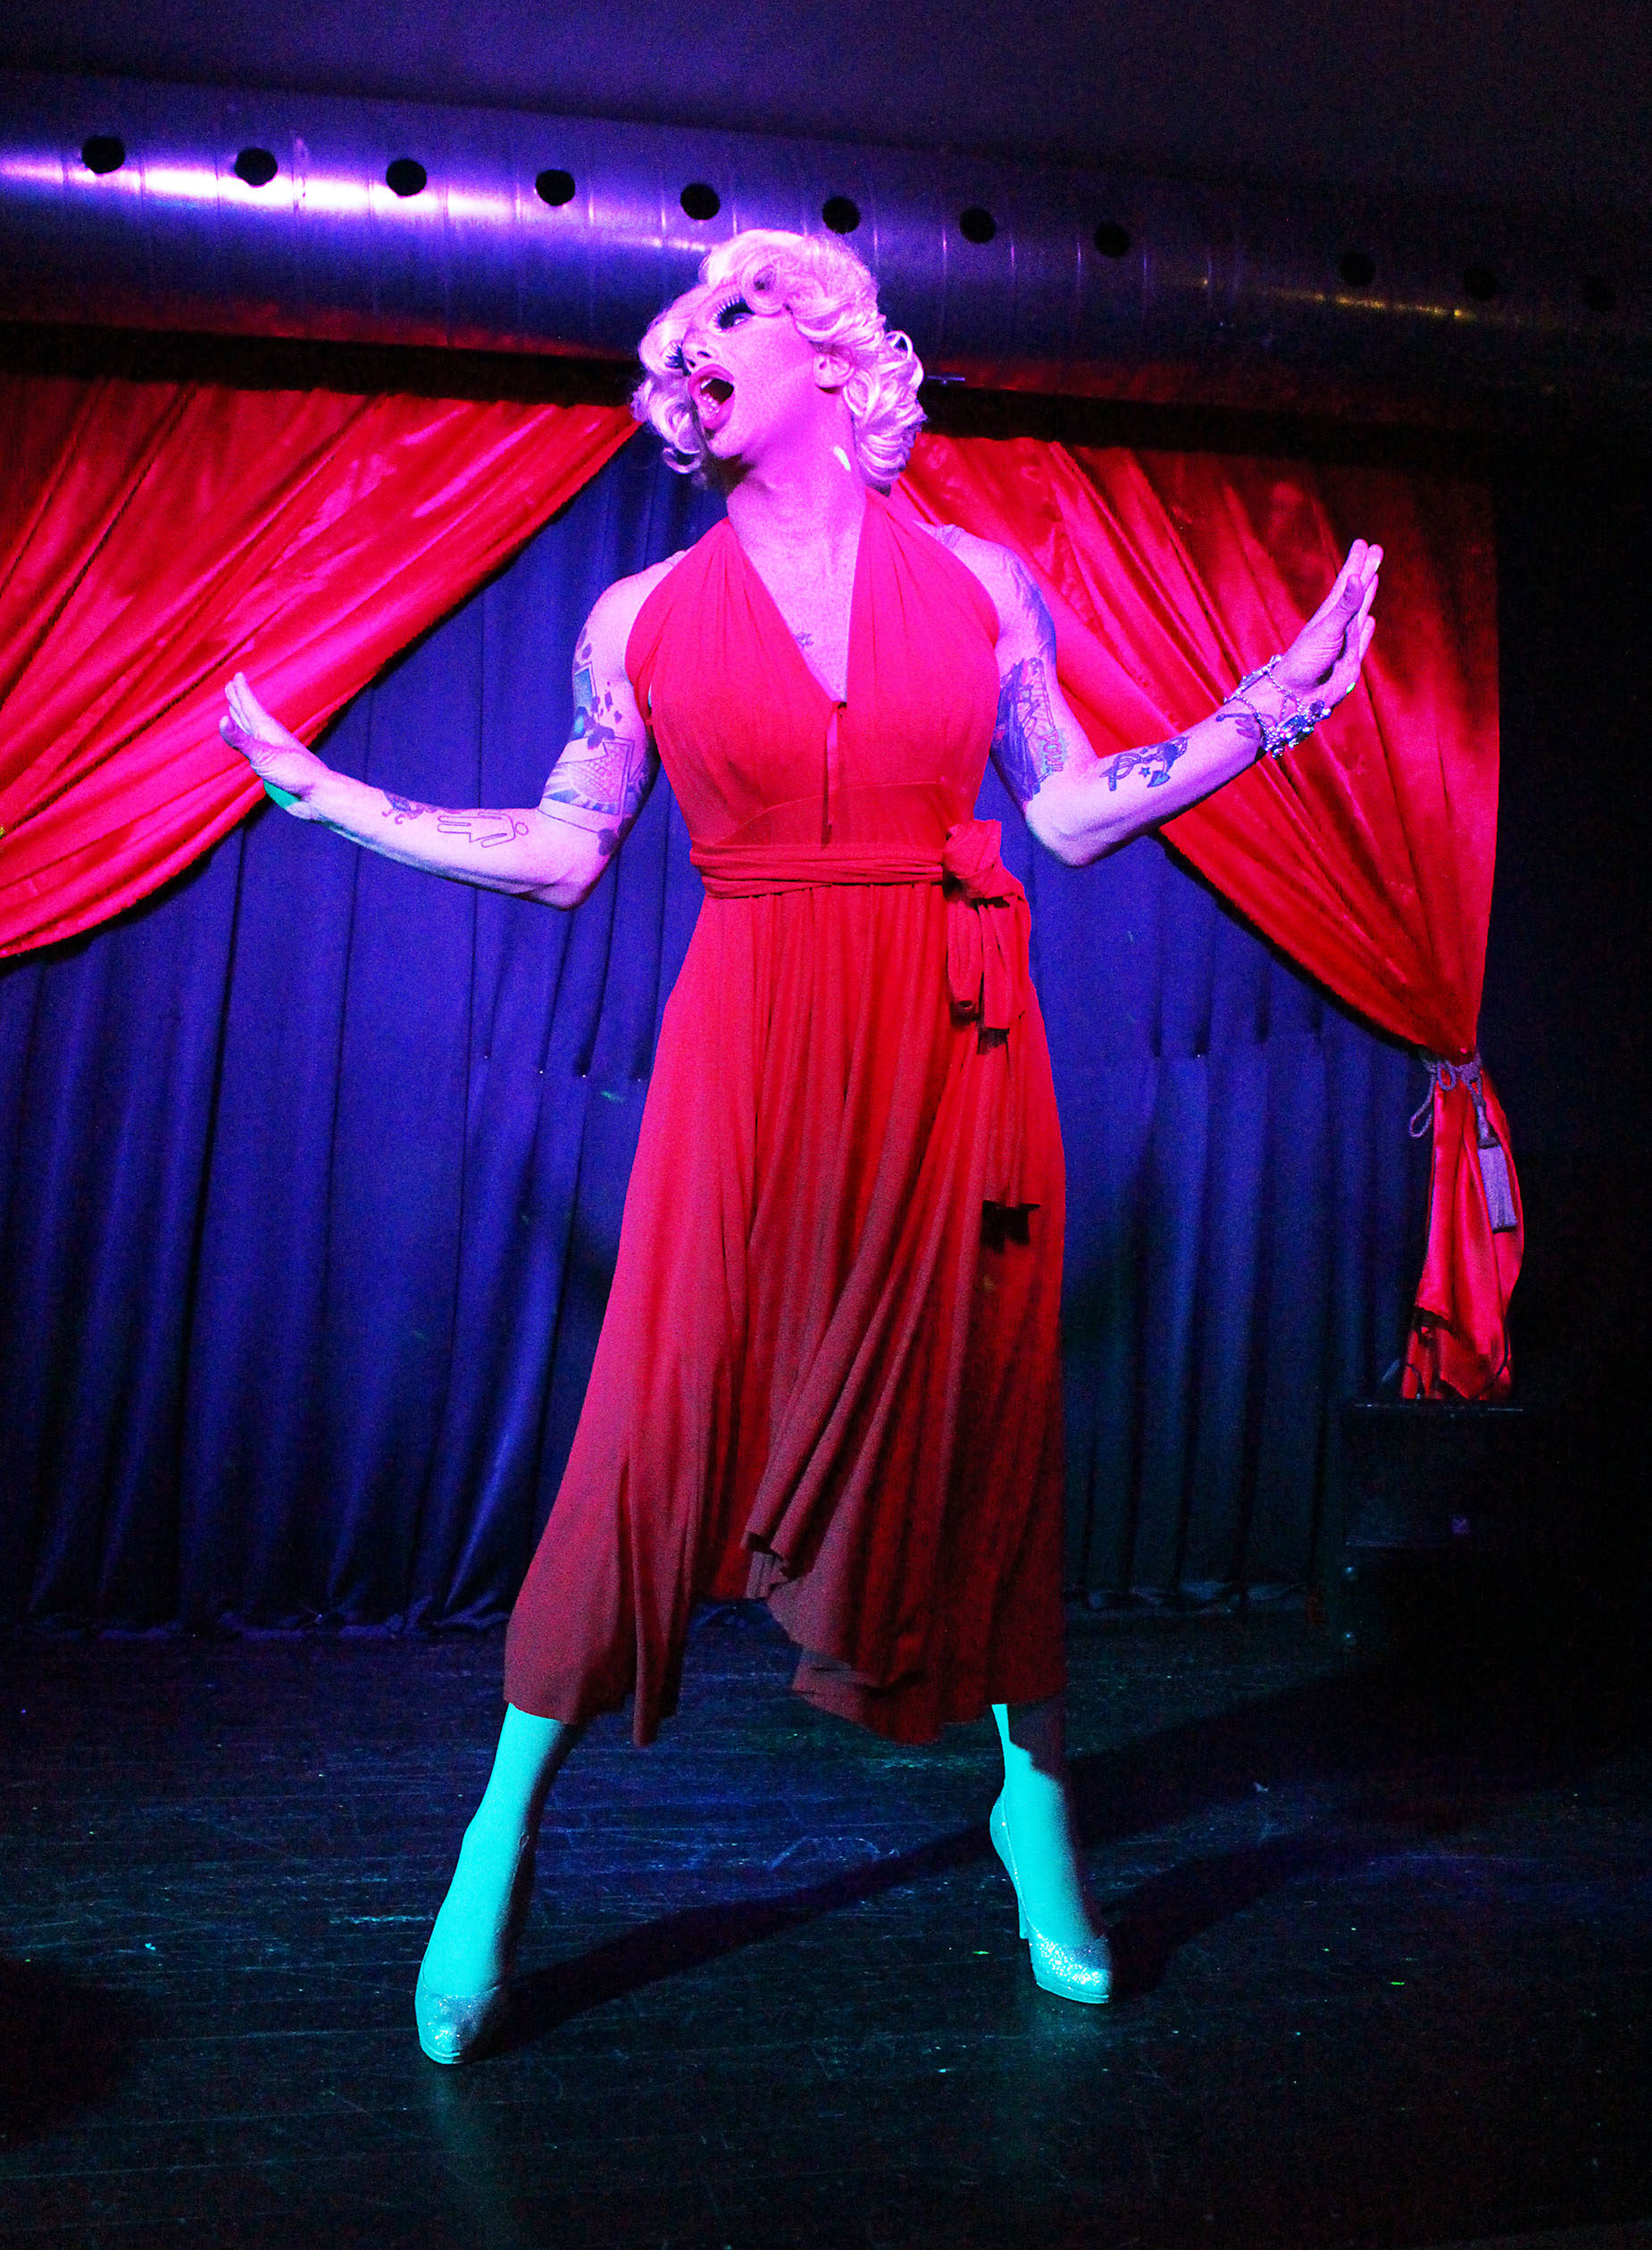 Scarlett Bobo on stage in a red outfit, with red curtains in the background.